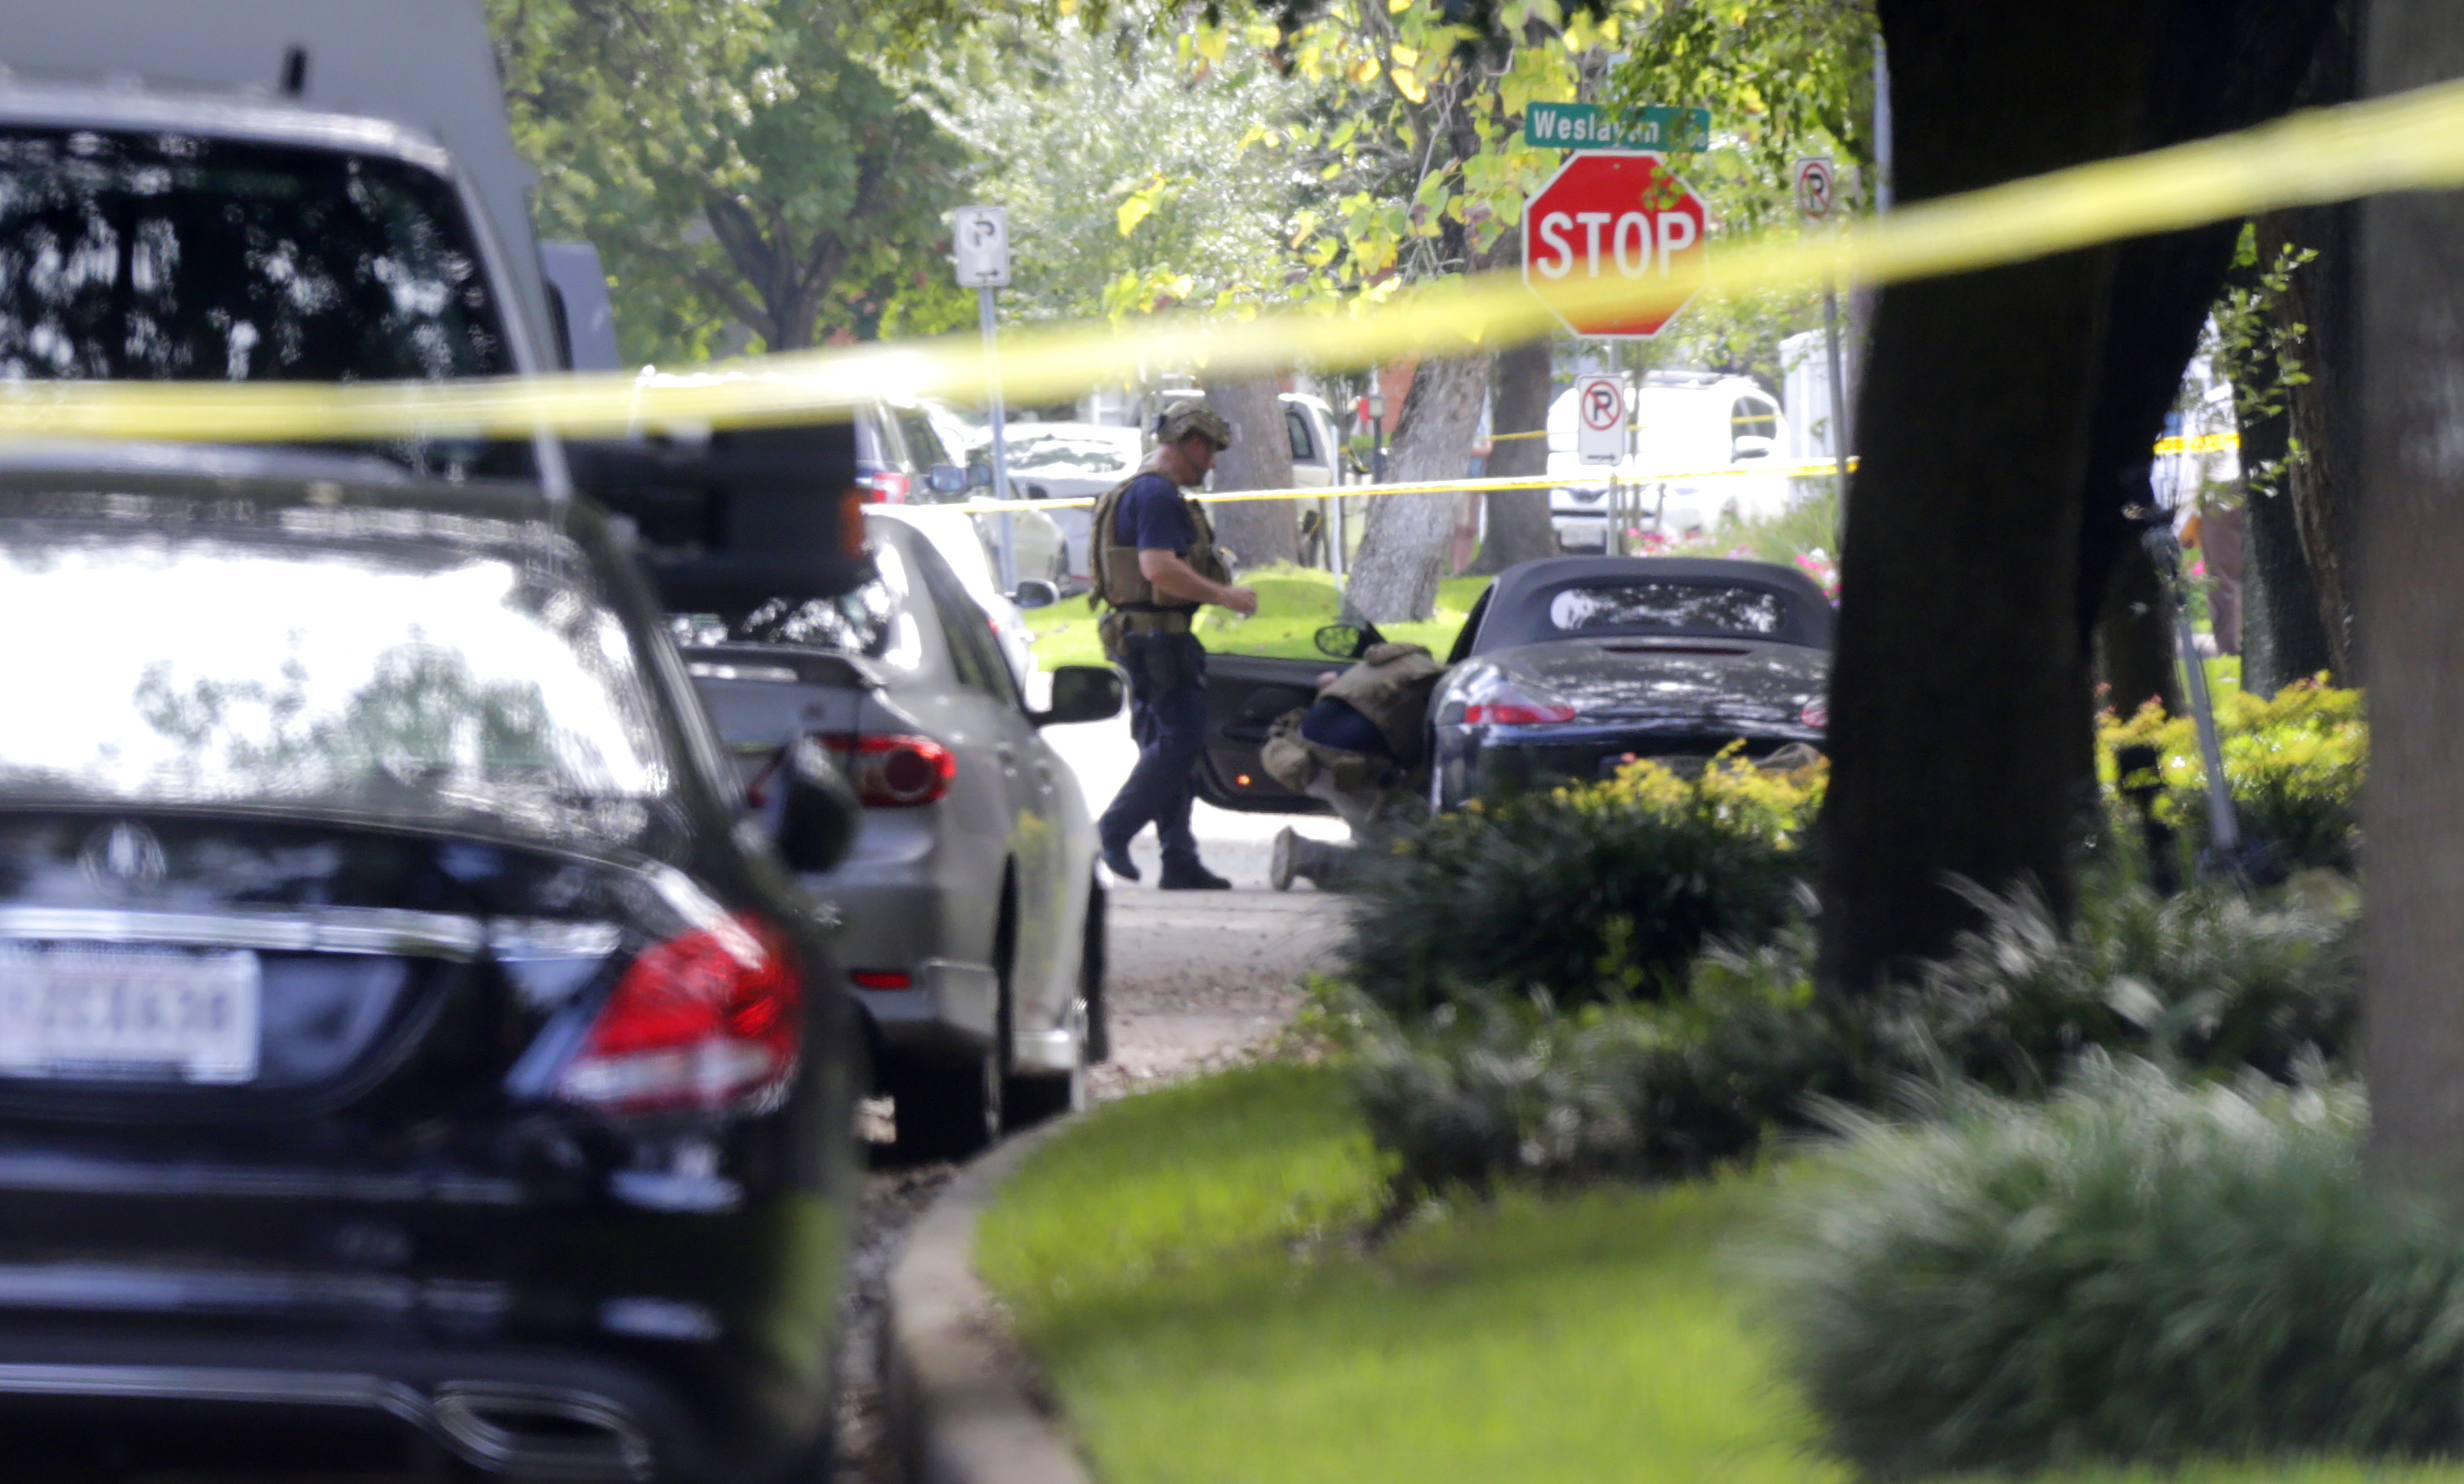 Houston gunman killed after wounding 9 described as reserved